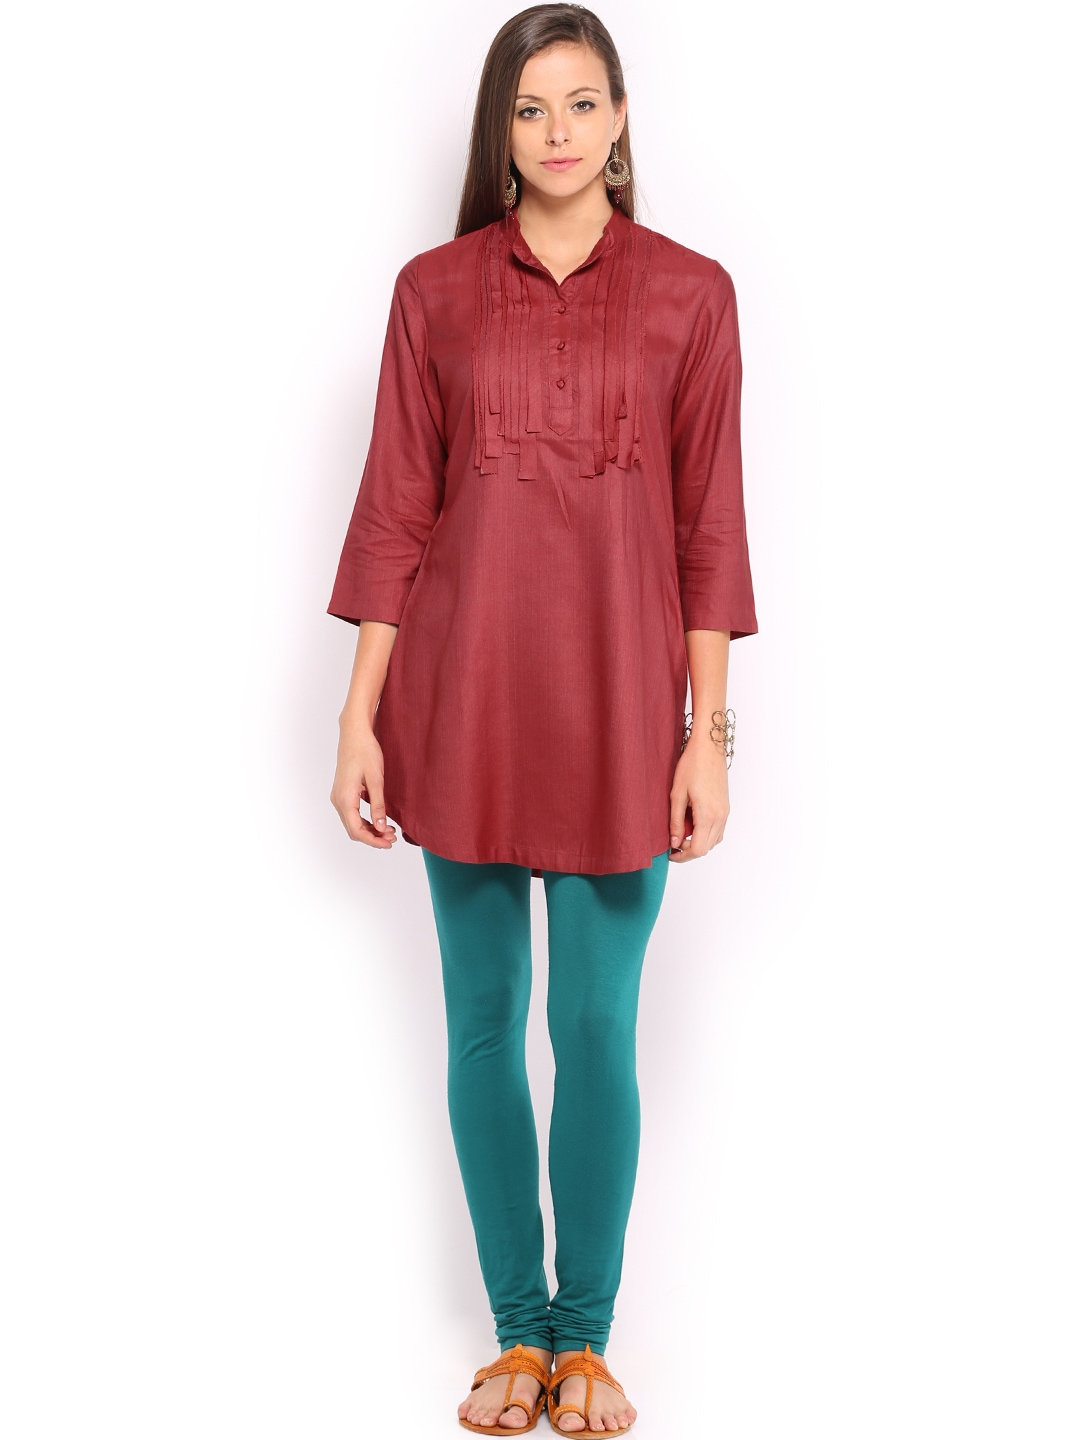 Tunics - Shop for fashionable tunics for women online at affordable rates, and be ready for any occasion. Tunics For Women Free Shipping COD day returns. Buy cotton tunics, designer tunics, embroidered tunics, Indian tunics,chiffon tunics, linen tunics, long tunics at great prices online in buzz24.ga on delivery.